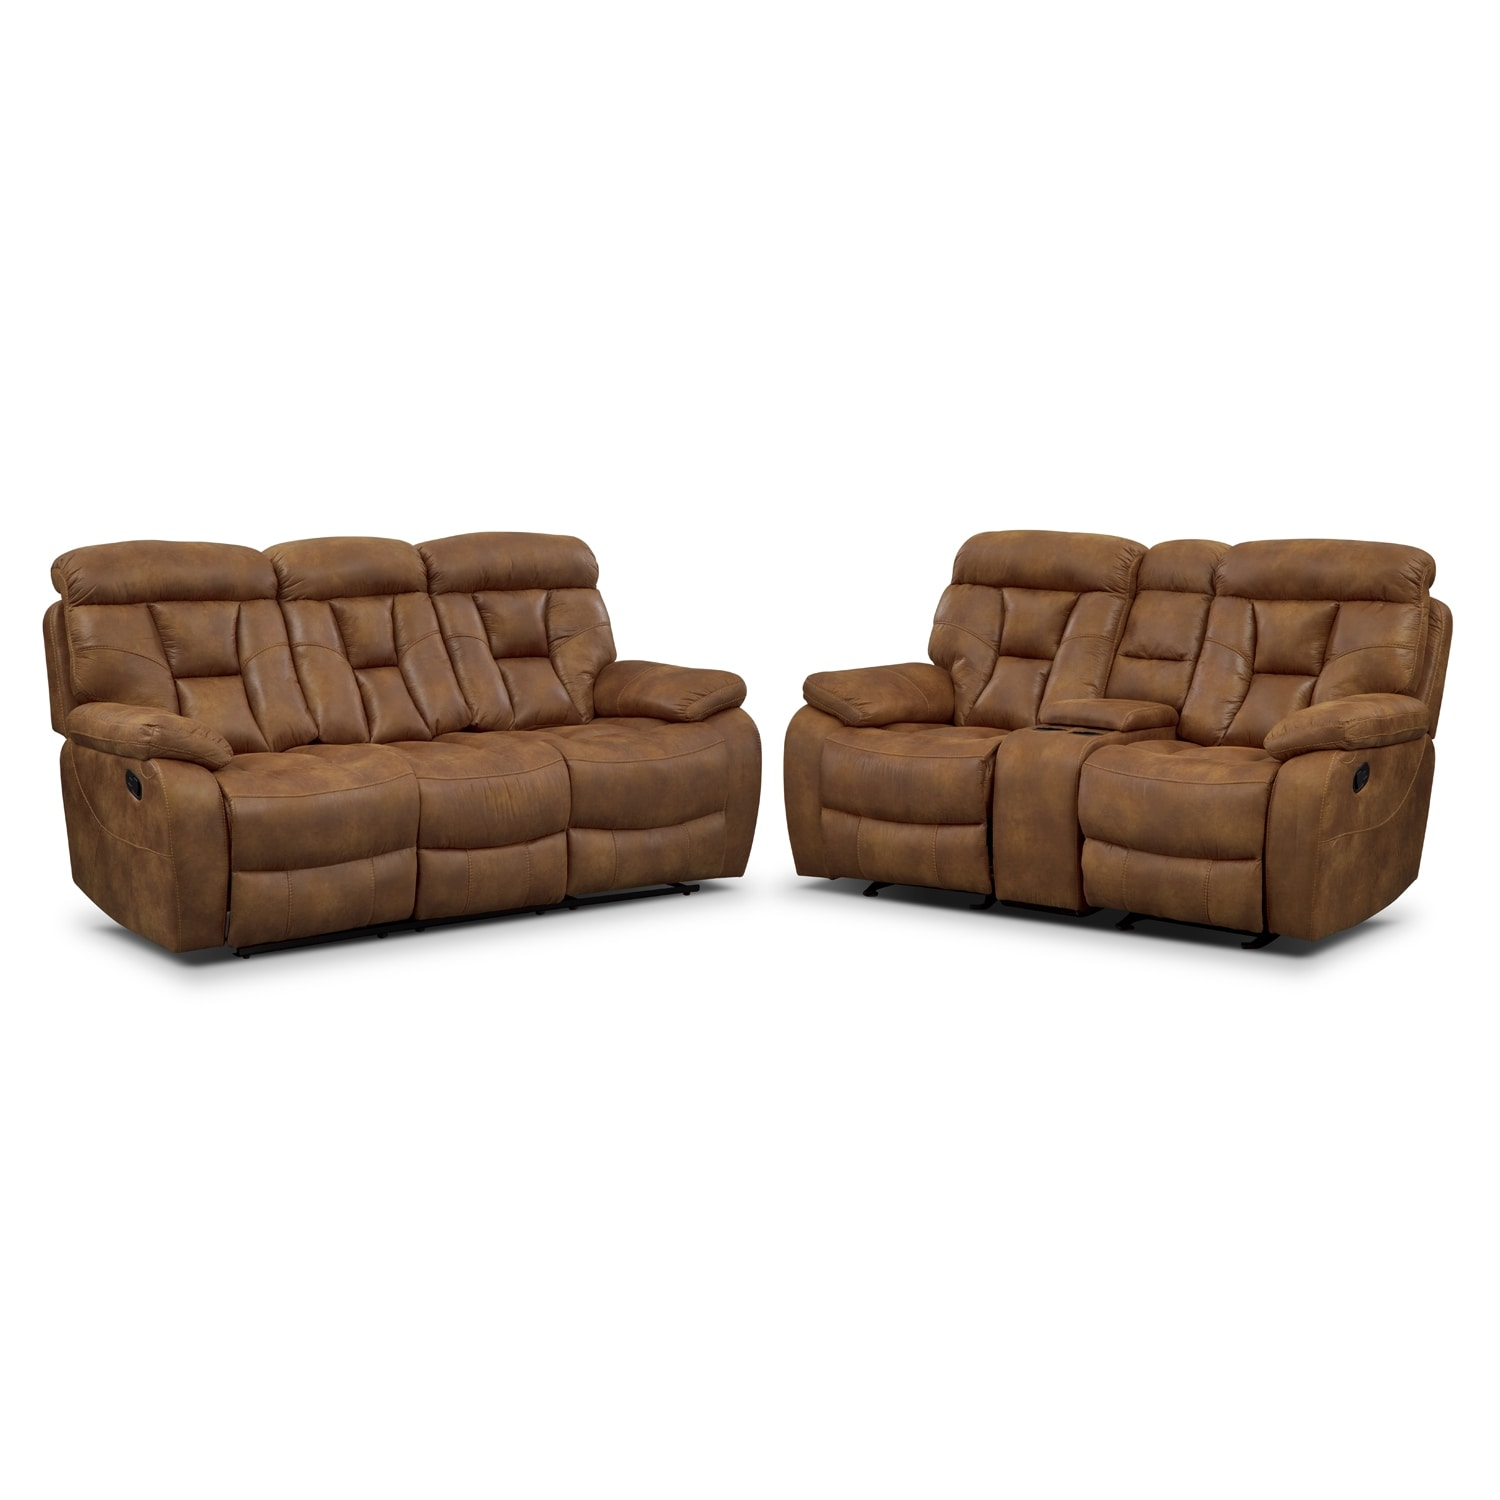 [Dakota II 2 Pc. Reclining Living Room]